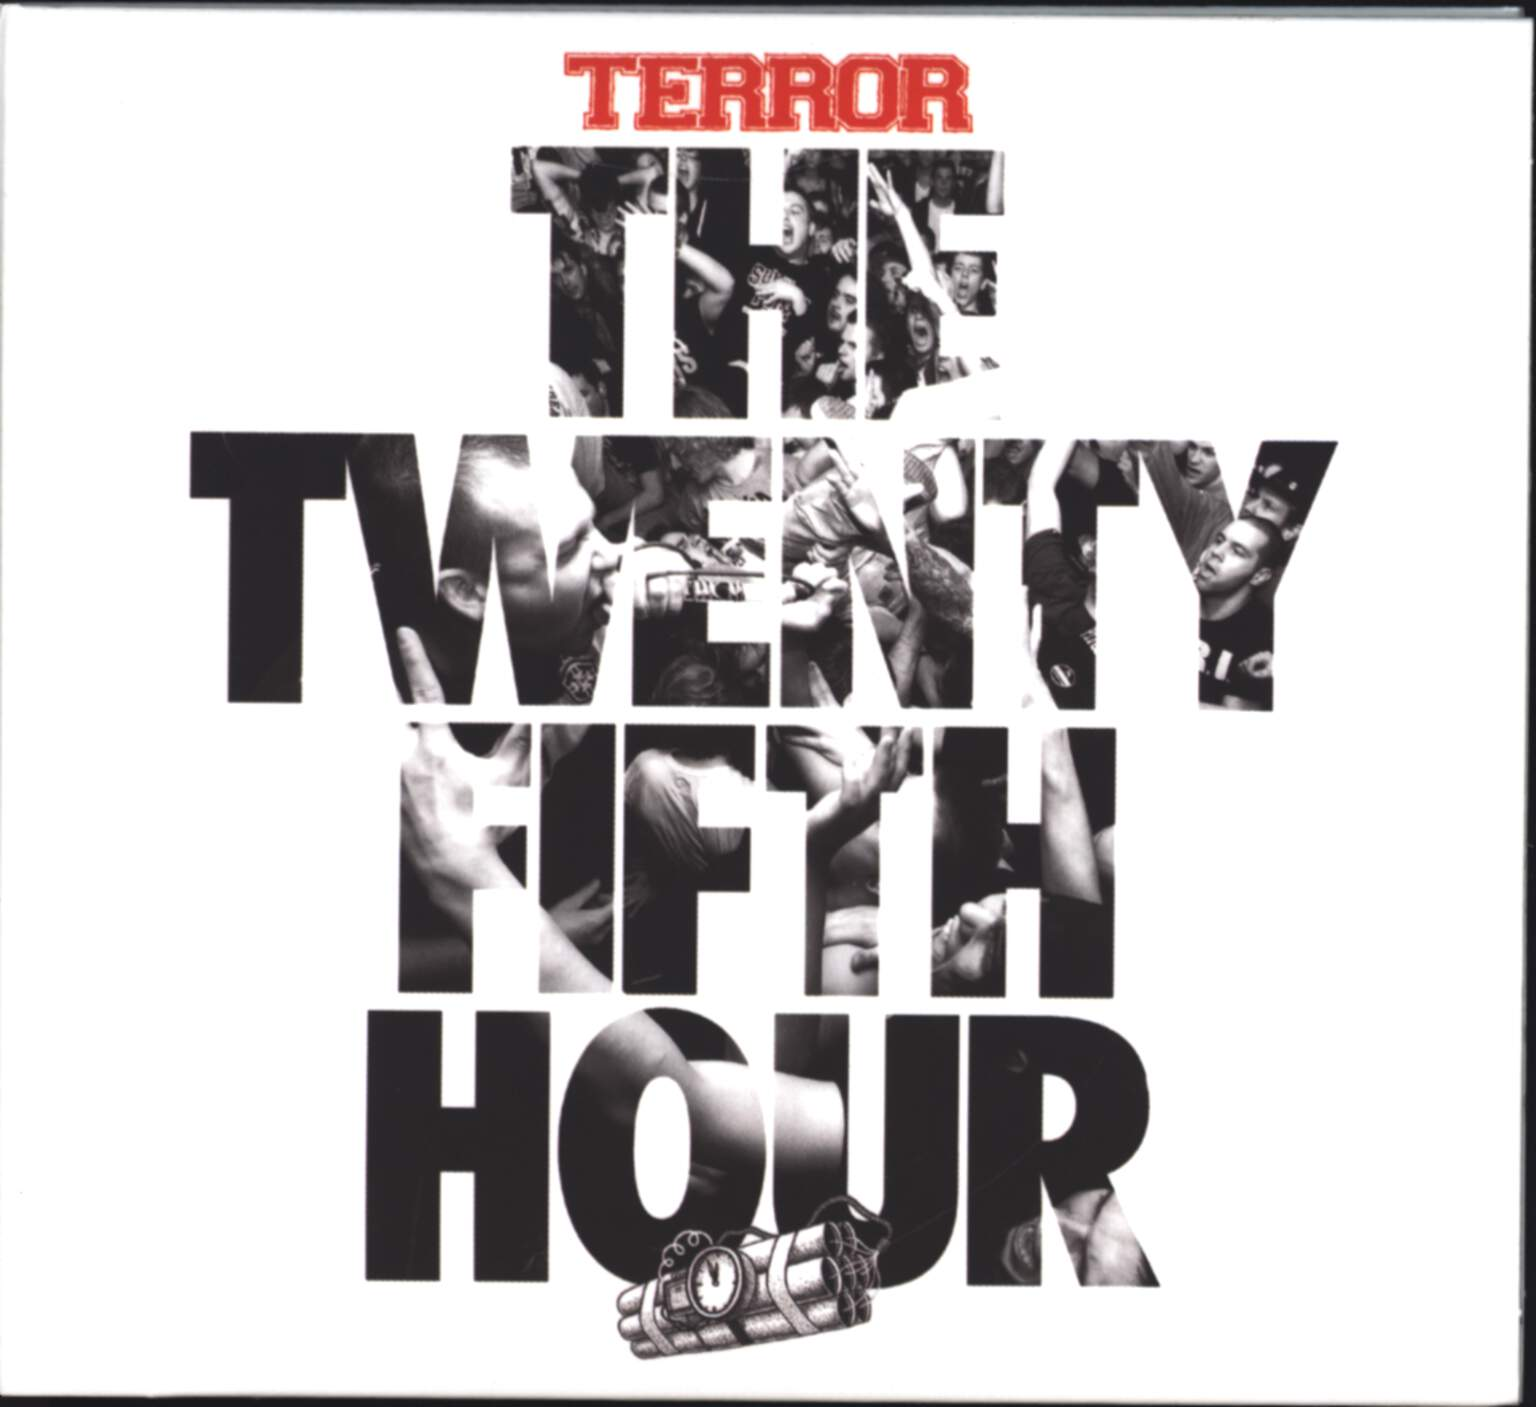 Terror: The 25th Hour, CD